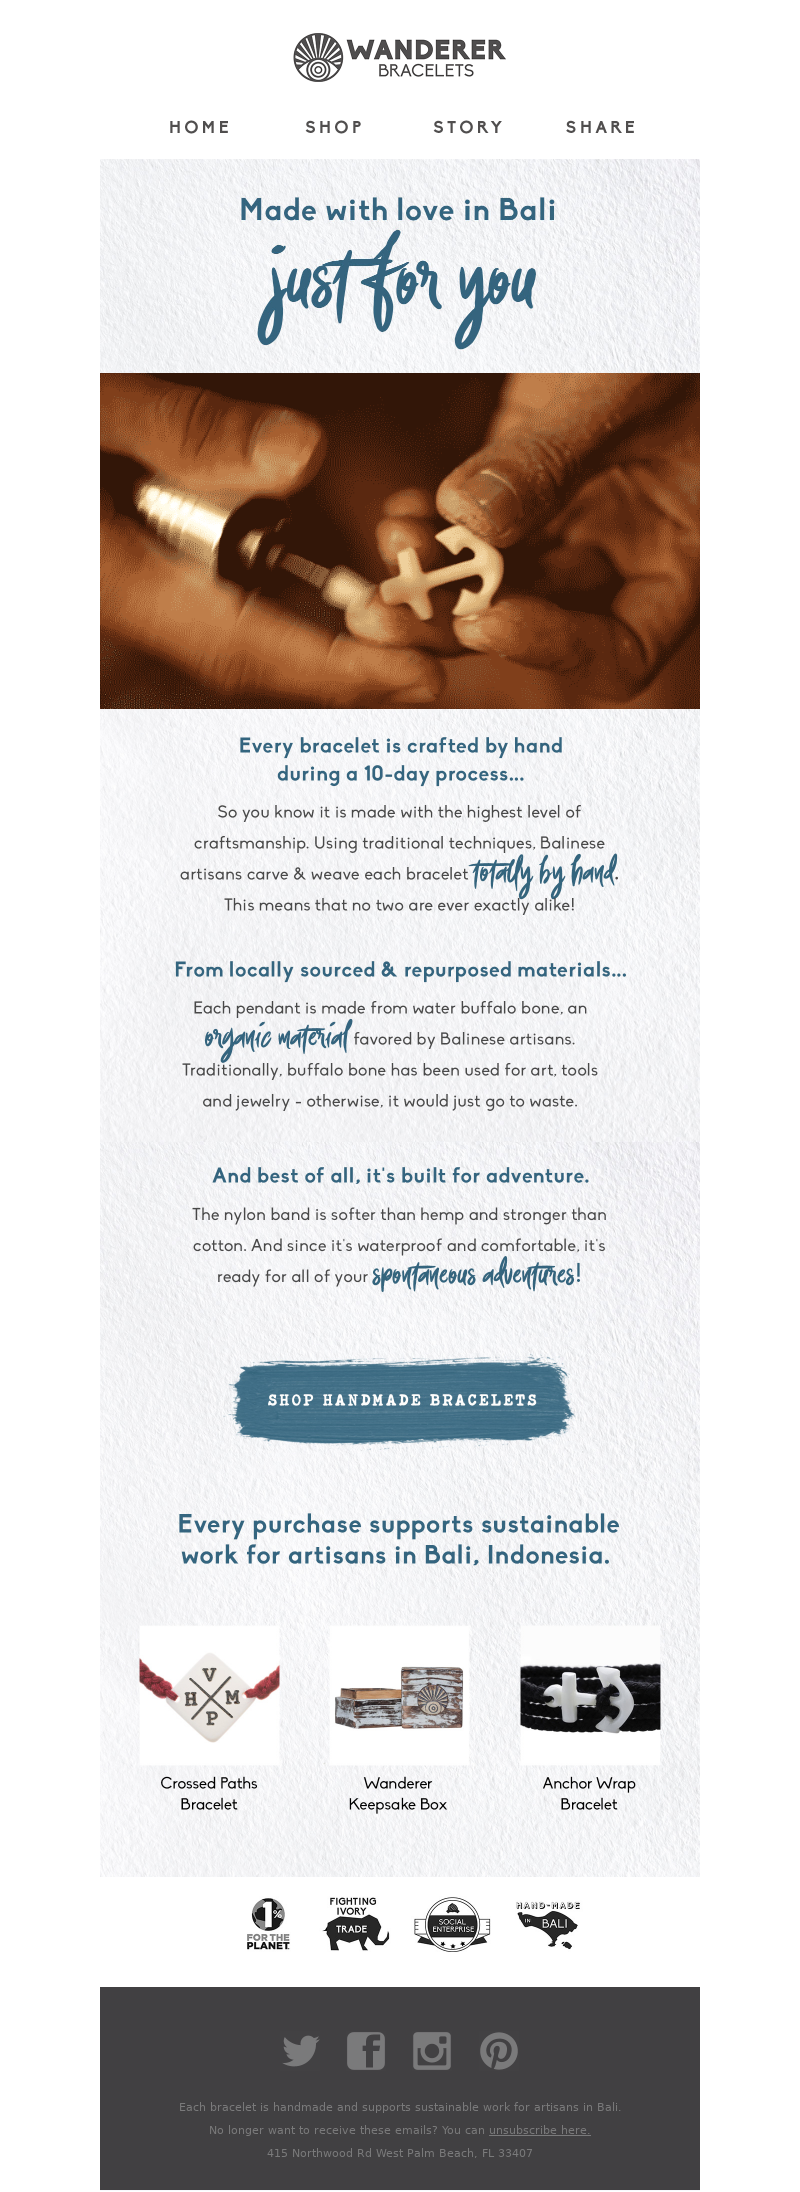 onboarding campaign example that educates about the brand